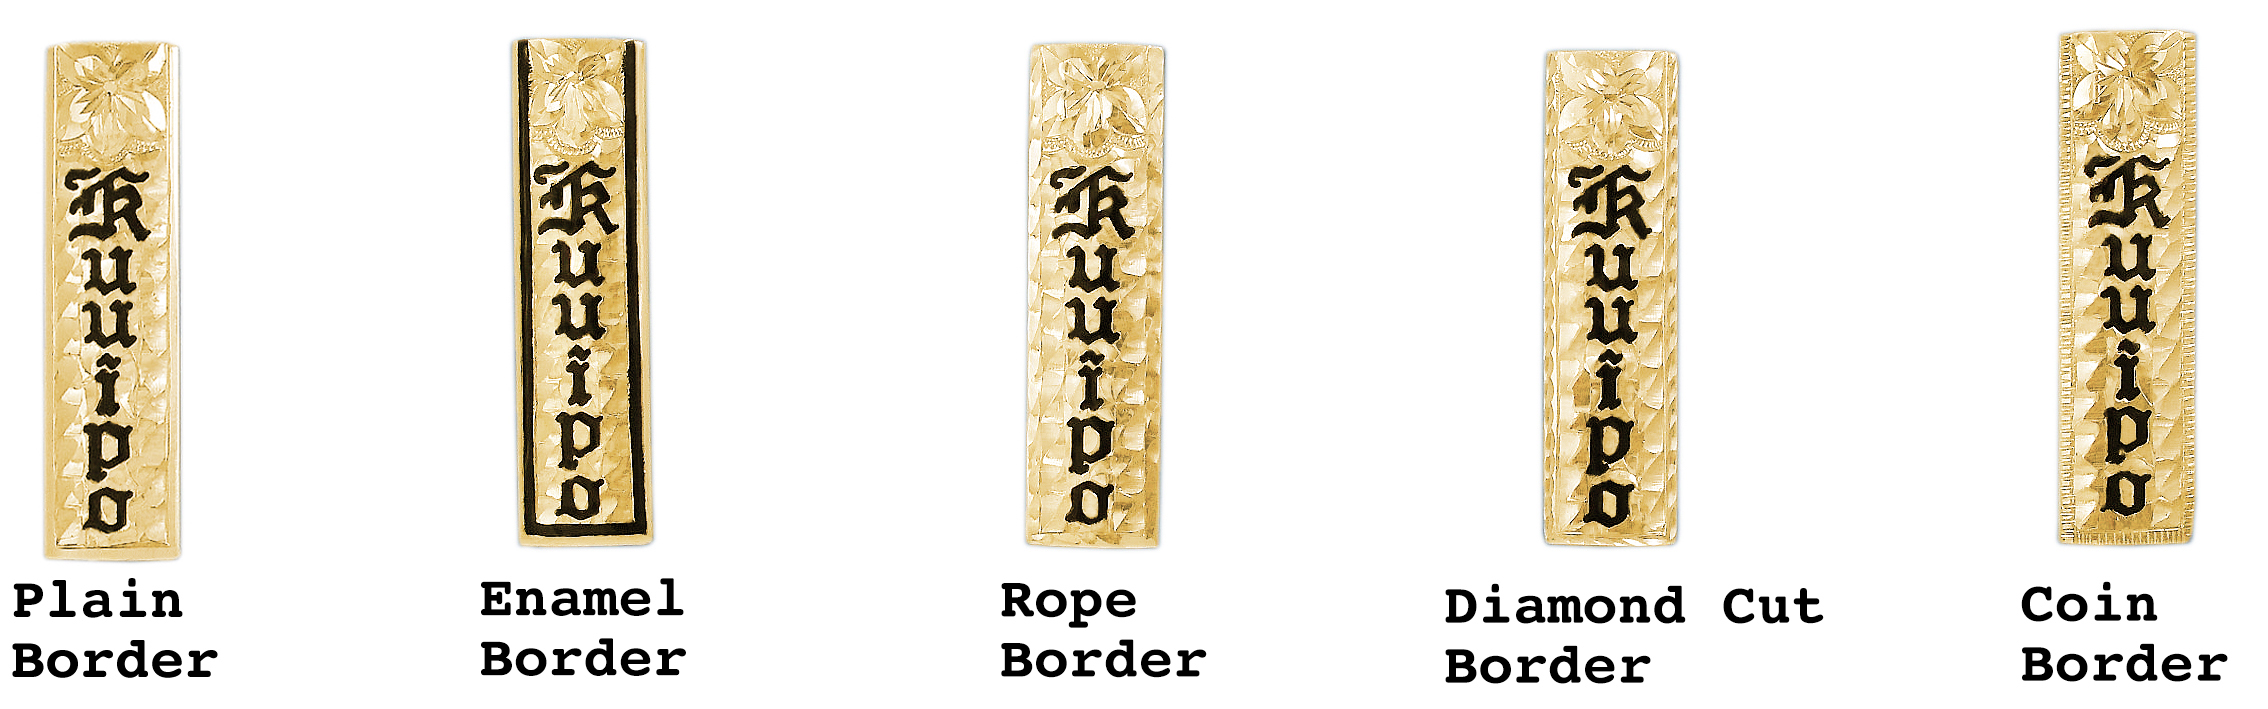 type-of-border5-14k-gold.jpg